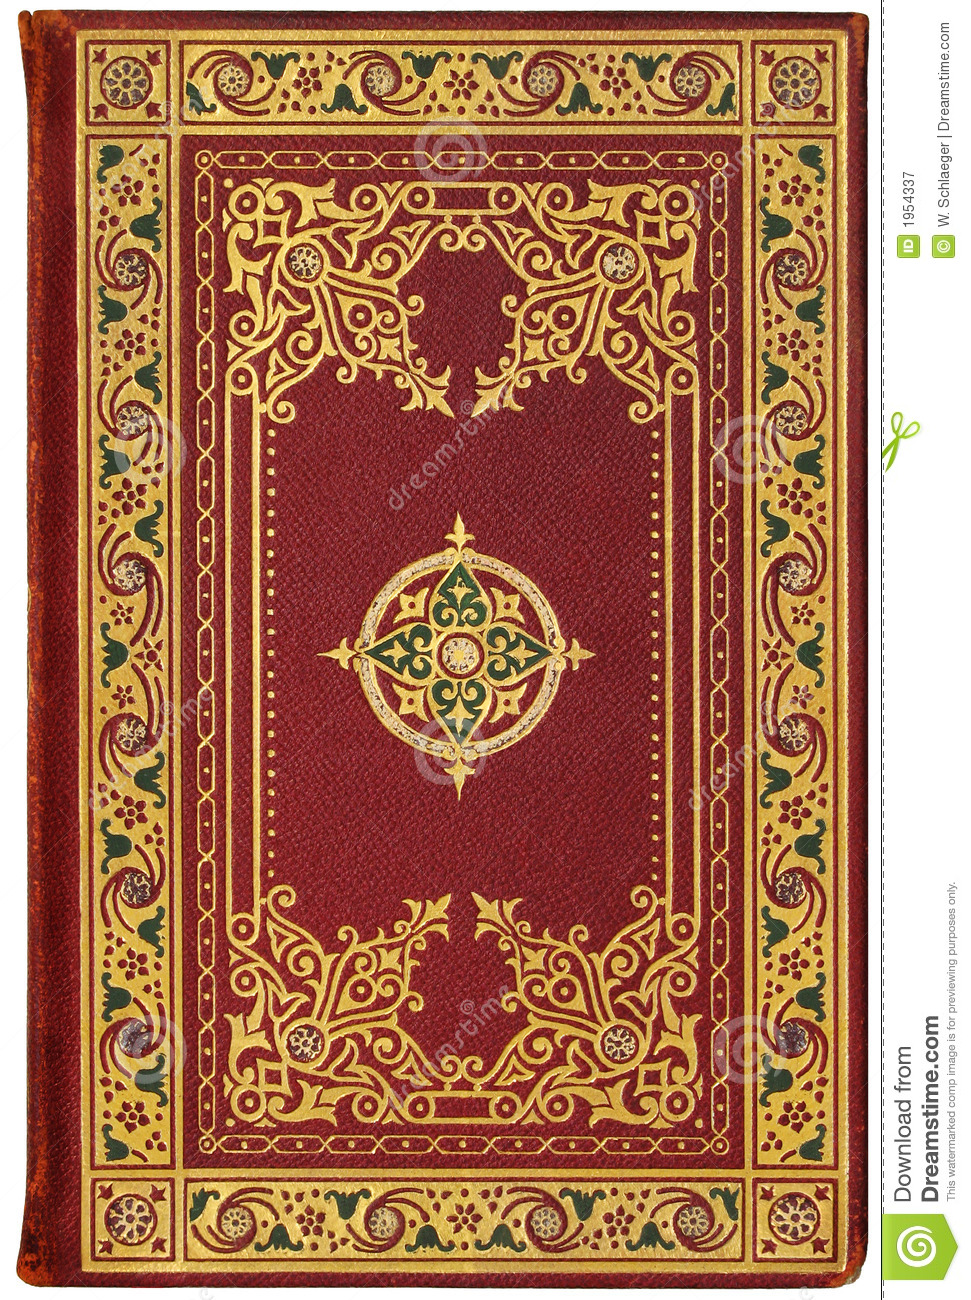 Vintage French Book Cover 1901, Edition 7/100 Stock Image